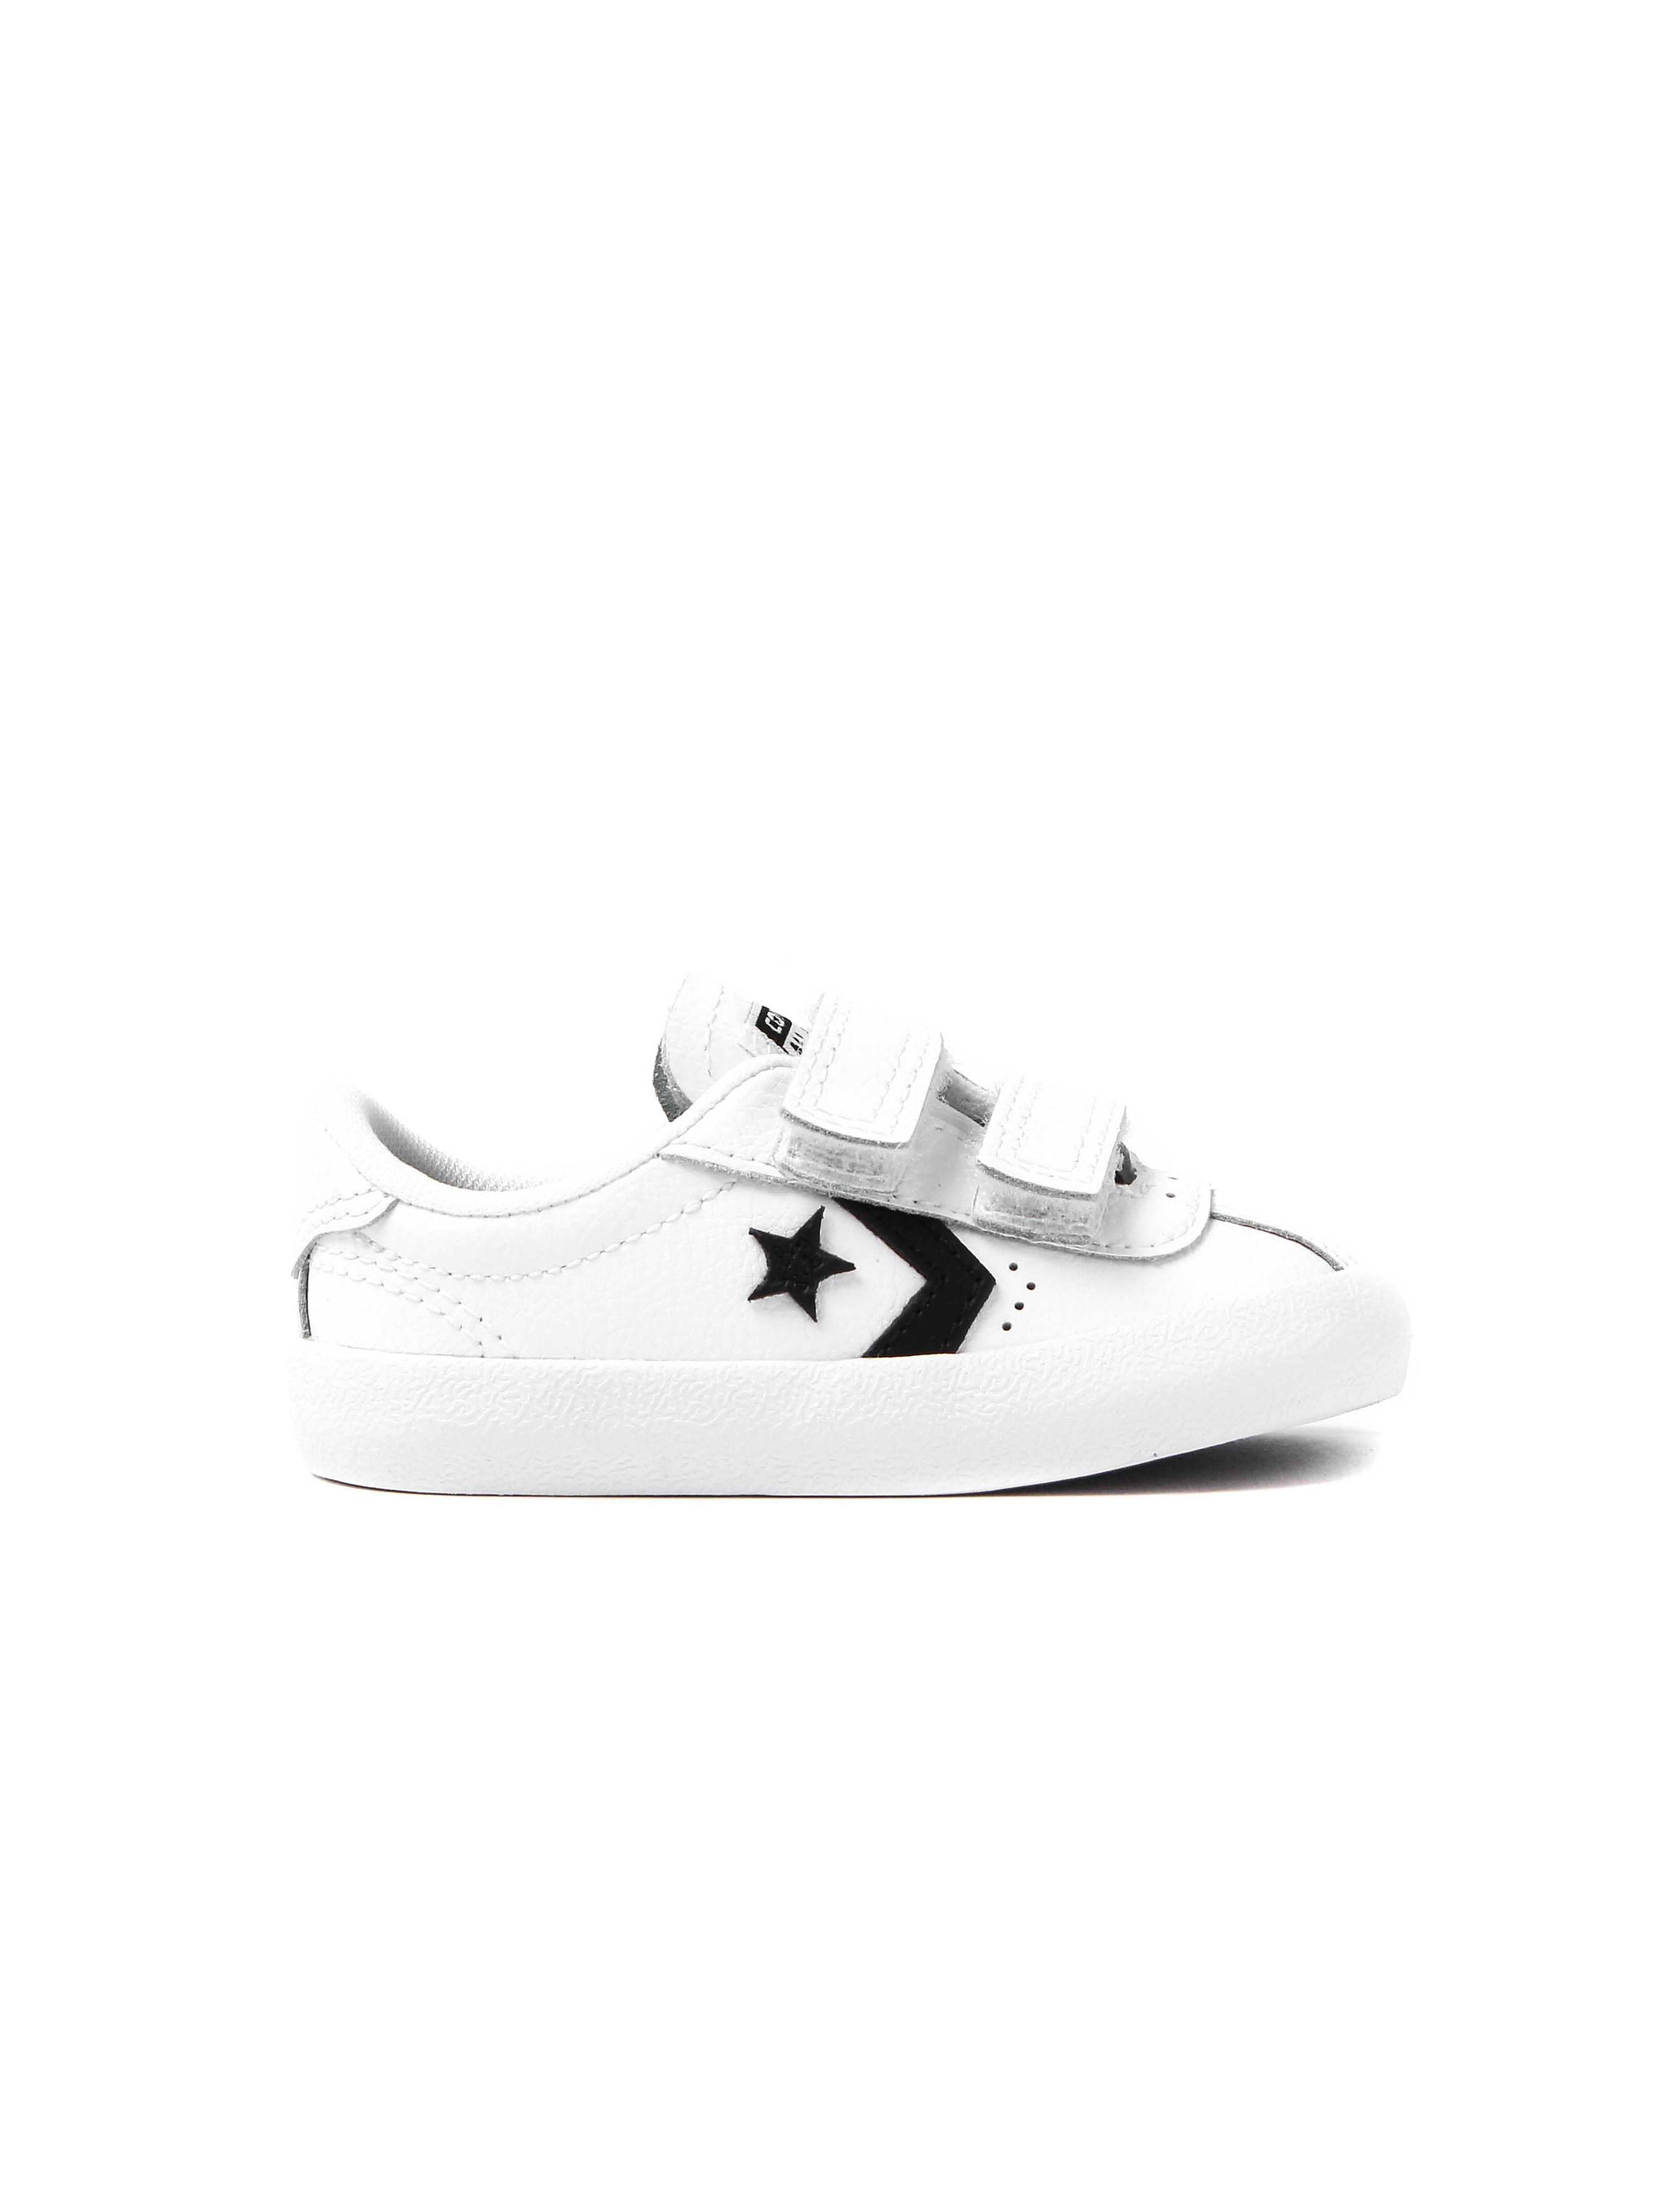 Converse Infants Breakpoint 2V Leather Trainers - White